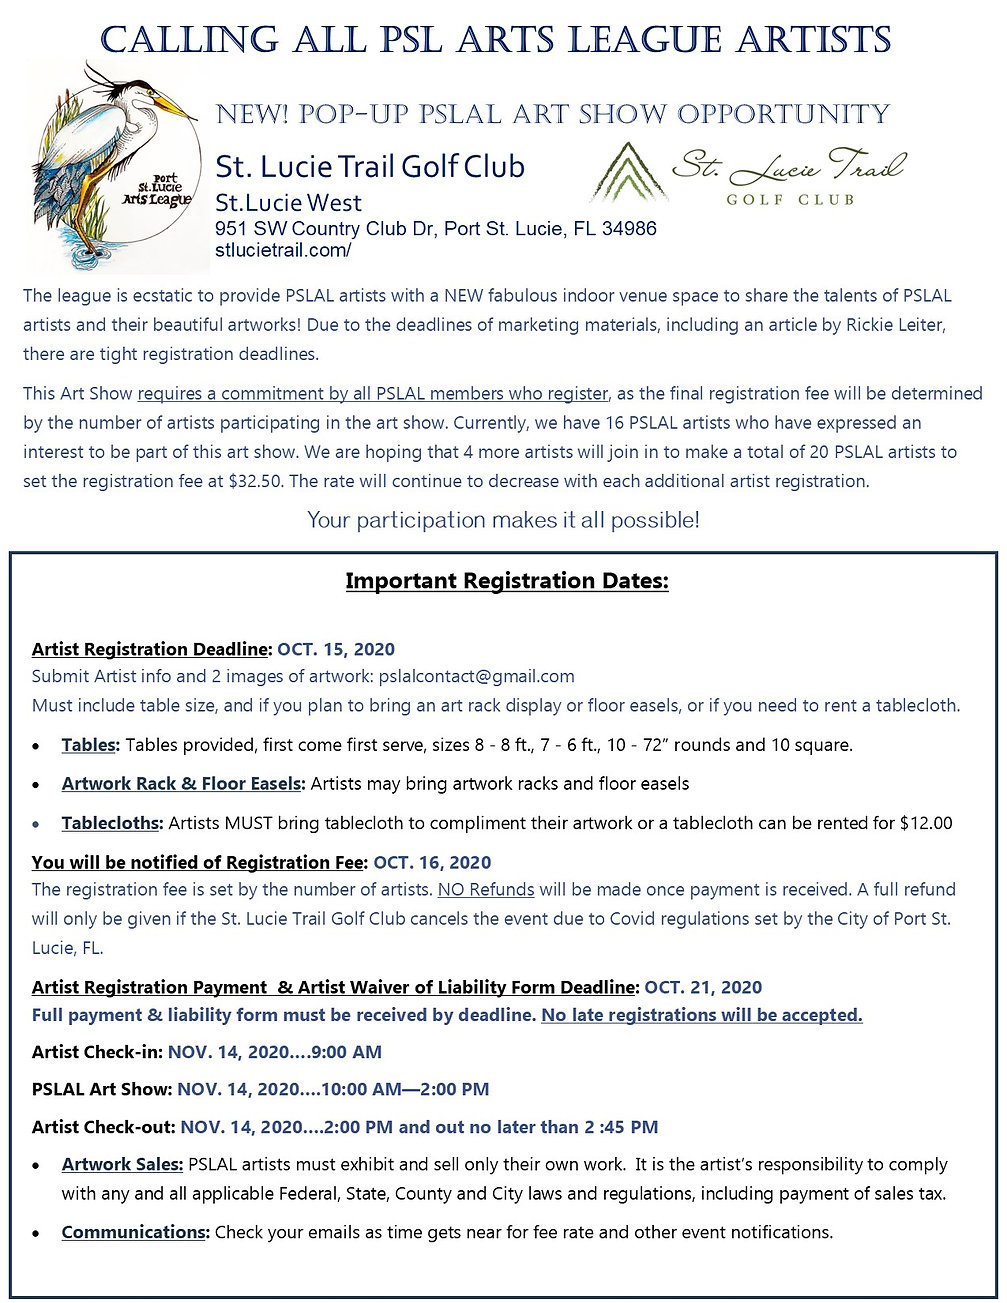 St. Lucie Golf Club Artist Registration.